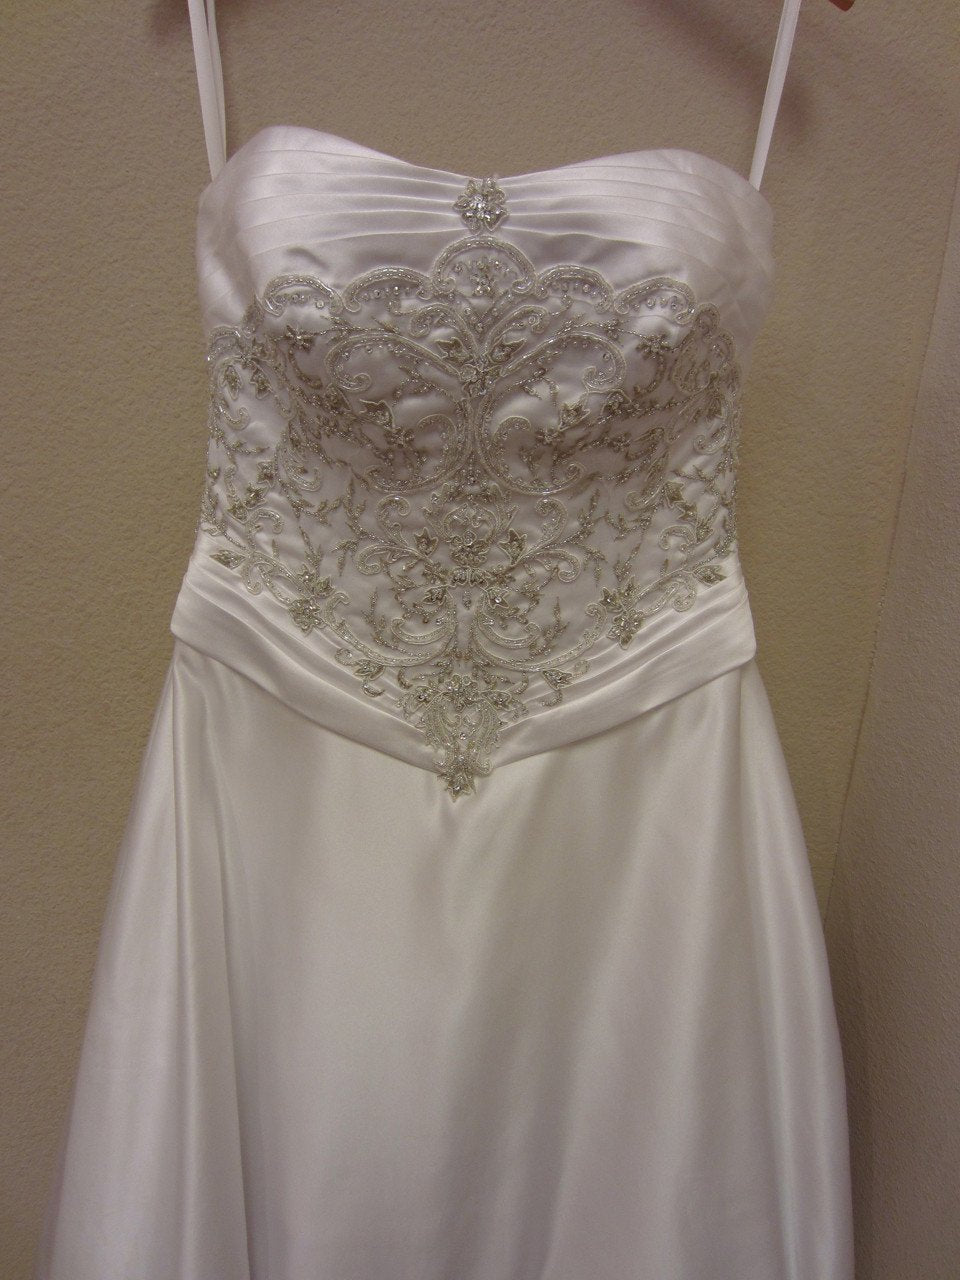 Allure 1961 White/Silver size 10 In Stock Wedding Dress - Tom's Bridal